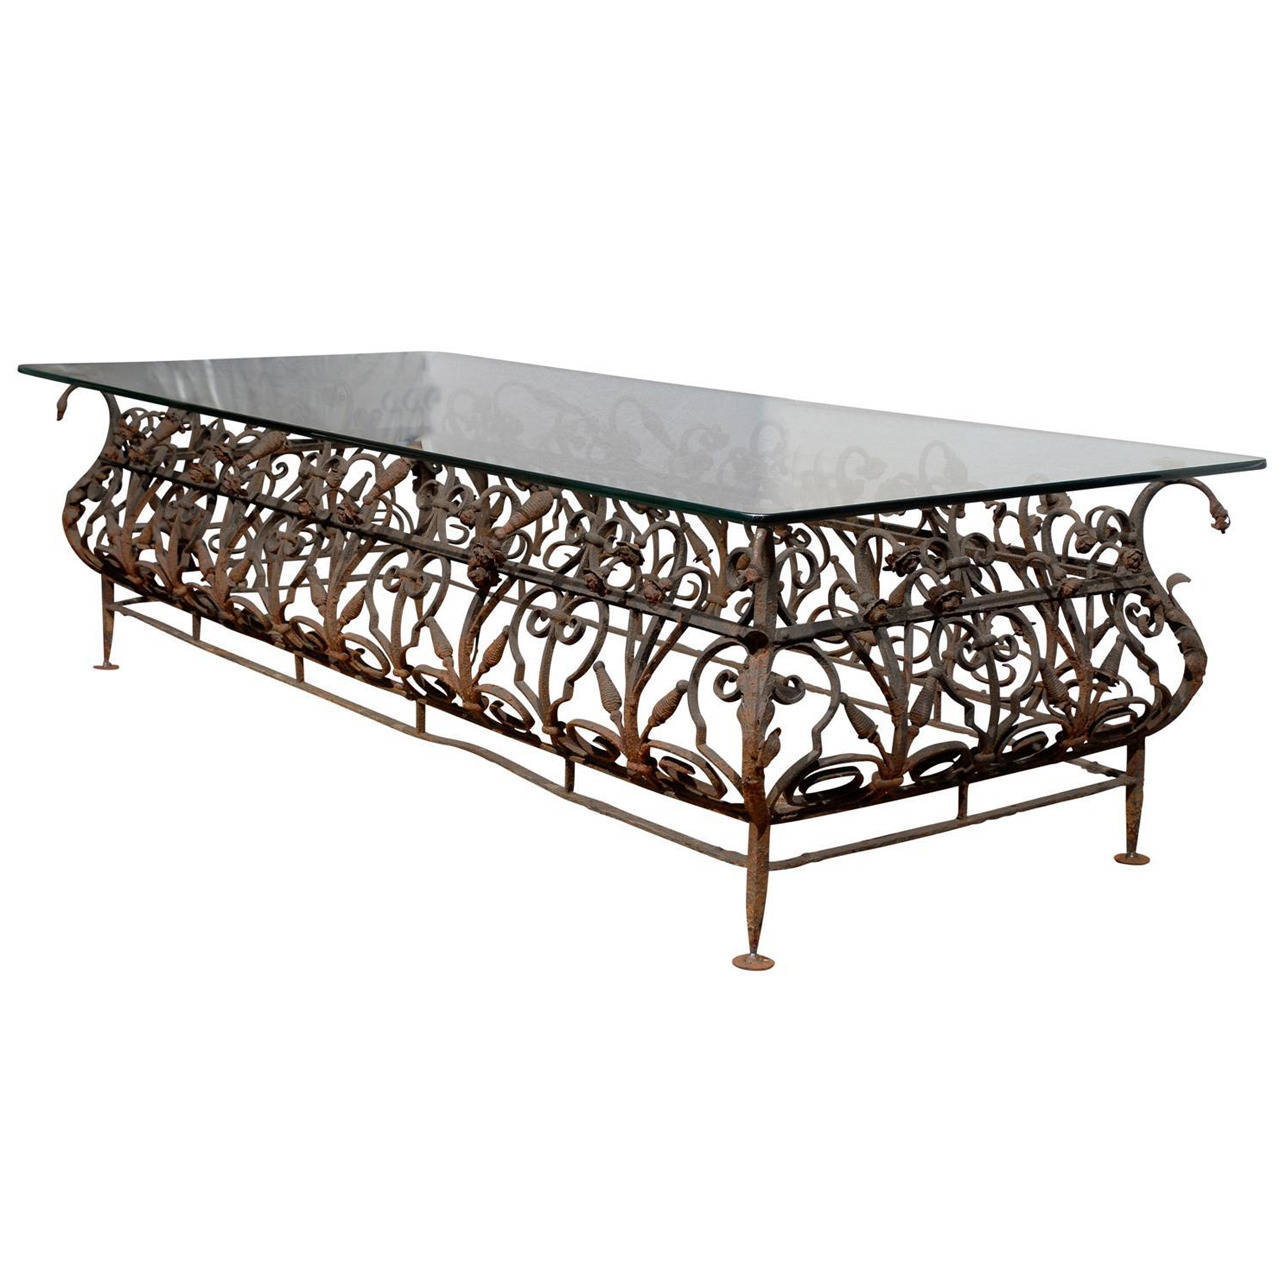 Austrian Mid 19th Century Large Size Wrought Iron And Glass Top Coffee Table Glass Top Coffee Table Coffee Table Wrought Iron Glass [ 1280 x 1280 Pixel ]